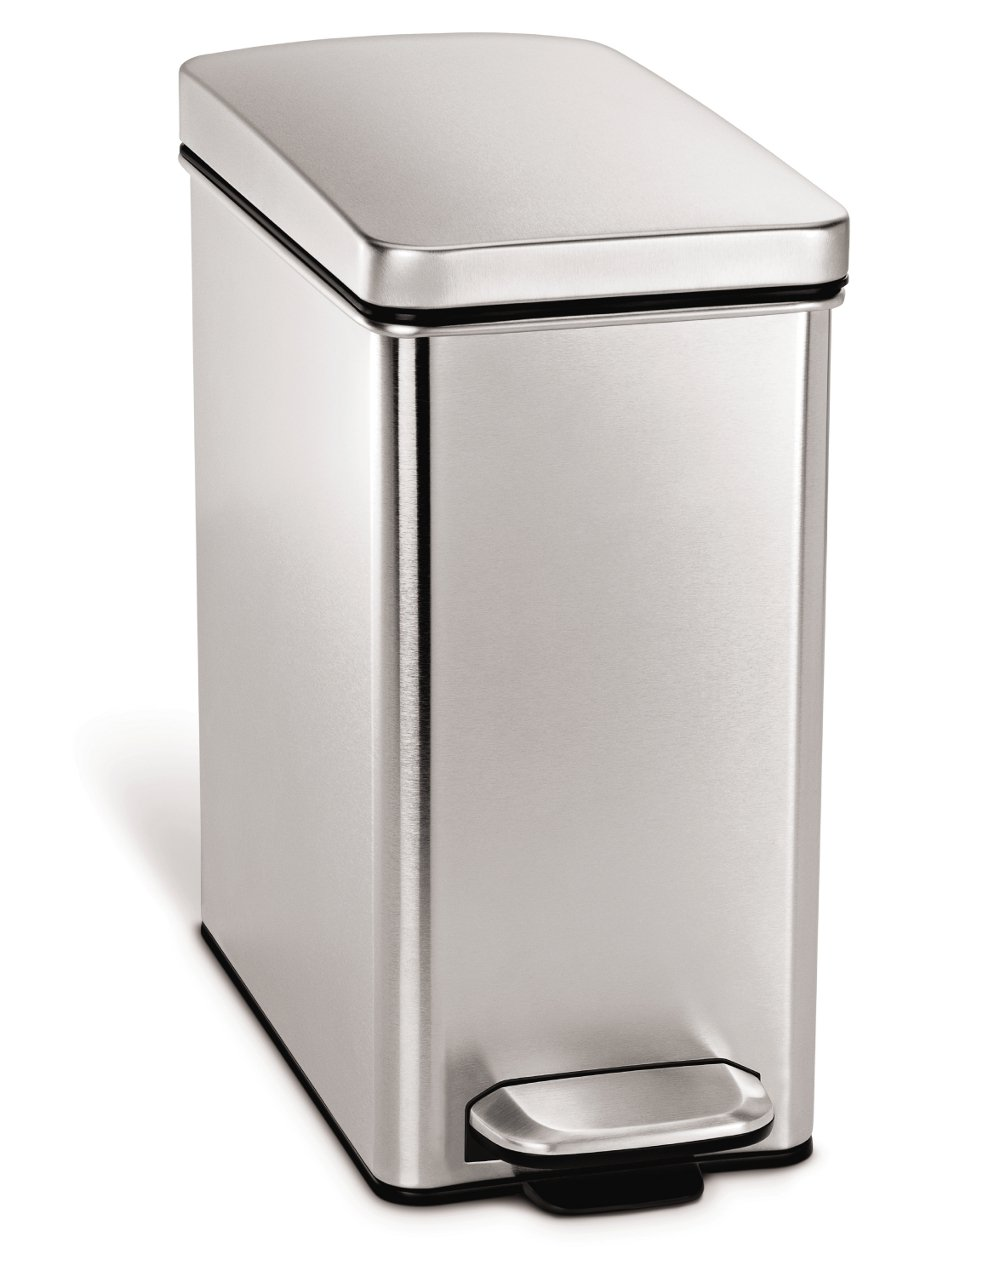 simplehuman Profile Step Trash Can, Brushed Stainless Steel, 10 Liters / 2.6 Gallons CW1180